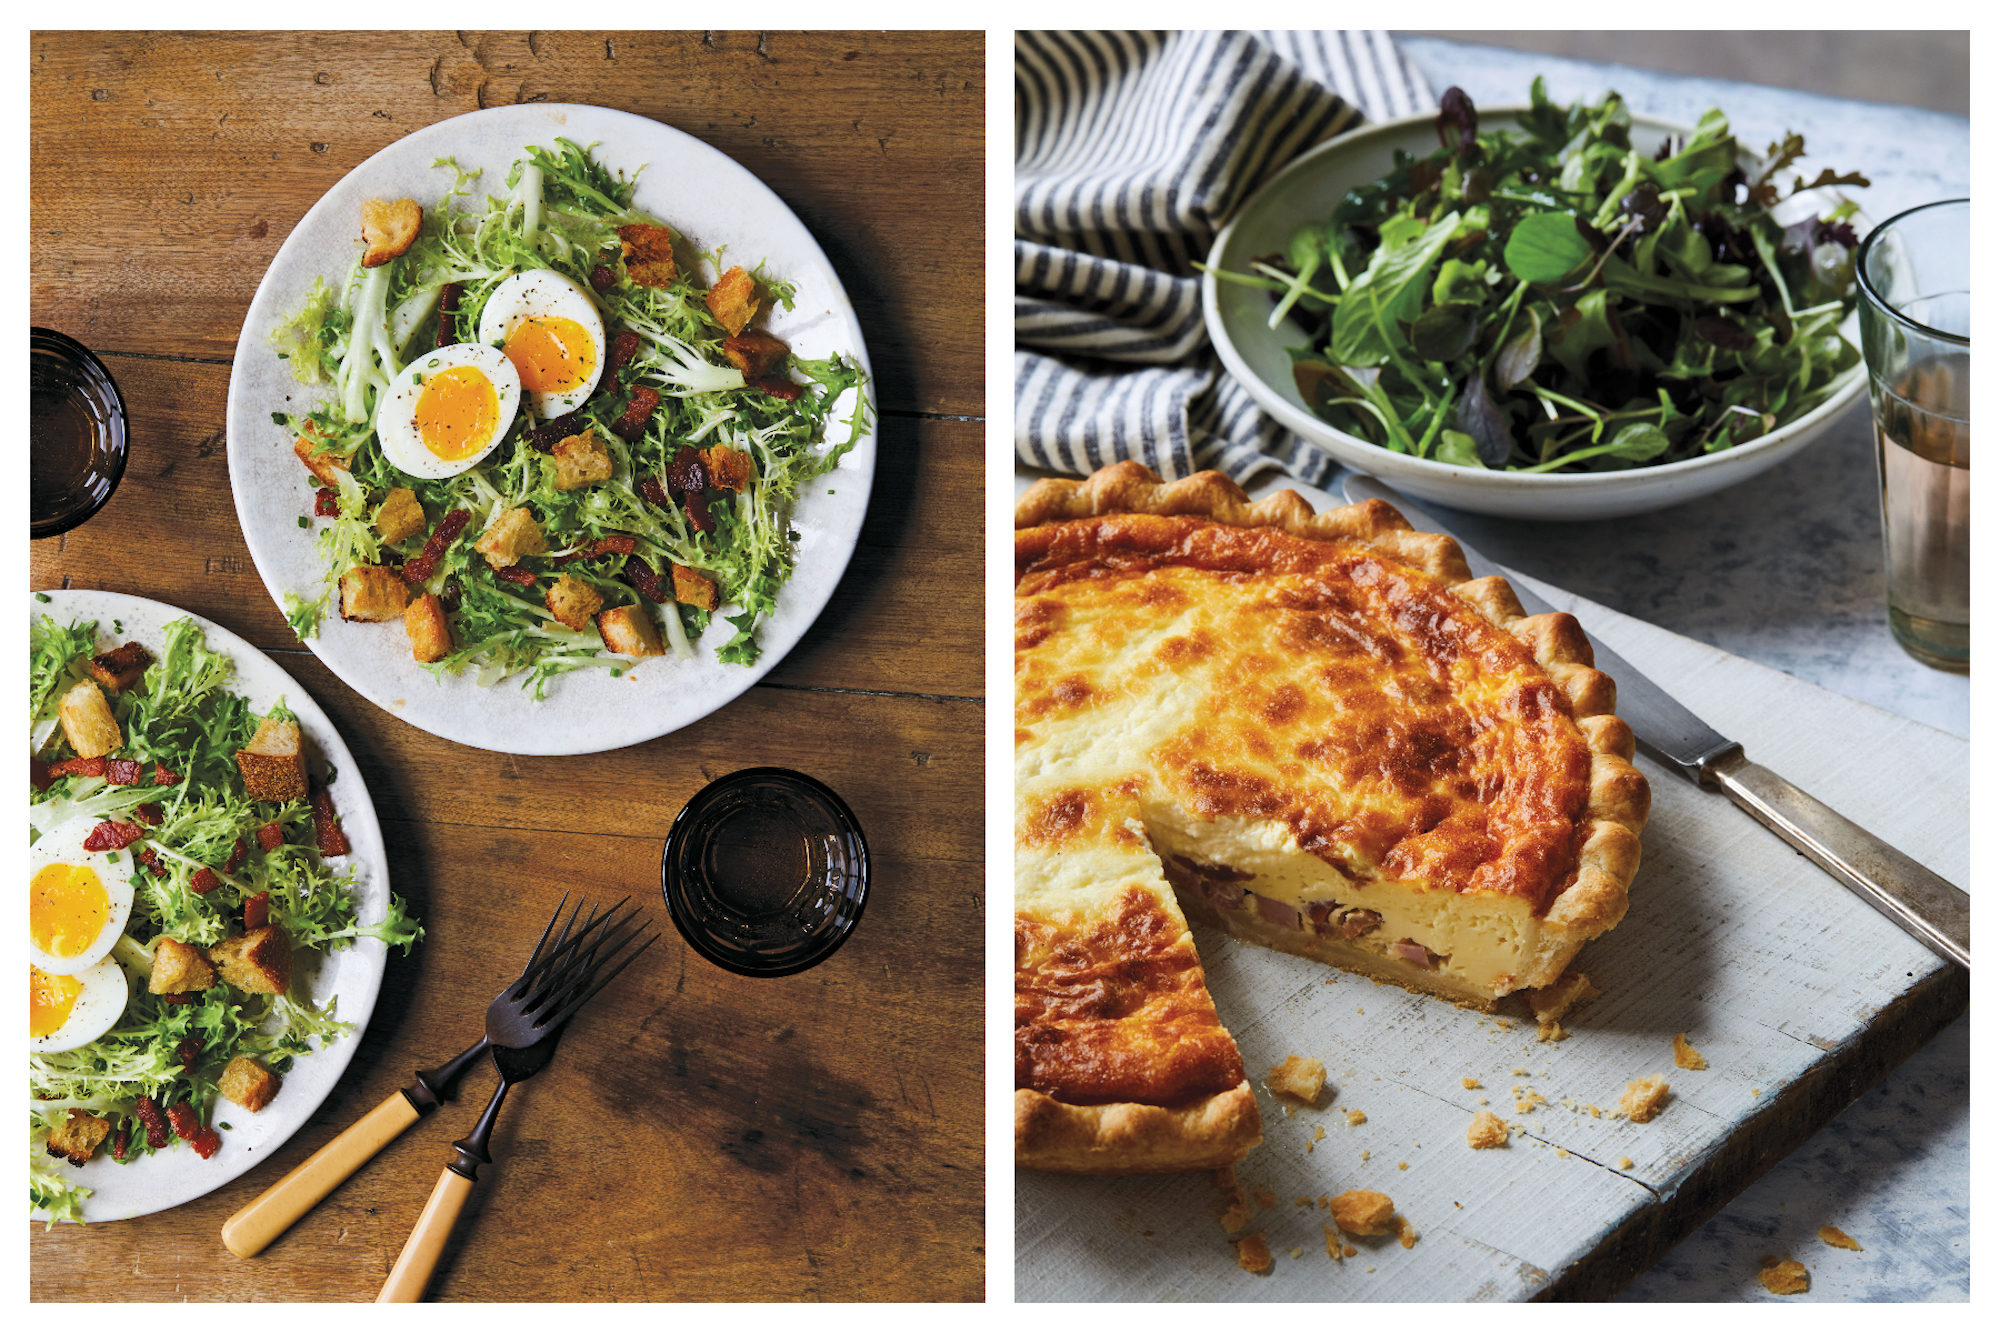 One of our favorite French cookbooks includes 'Tasting Paris' by Clotilde Dusoulier and we love her Frisée Salad with eggs (left) and quiche Lorraine (right).